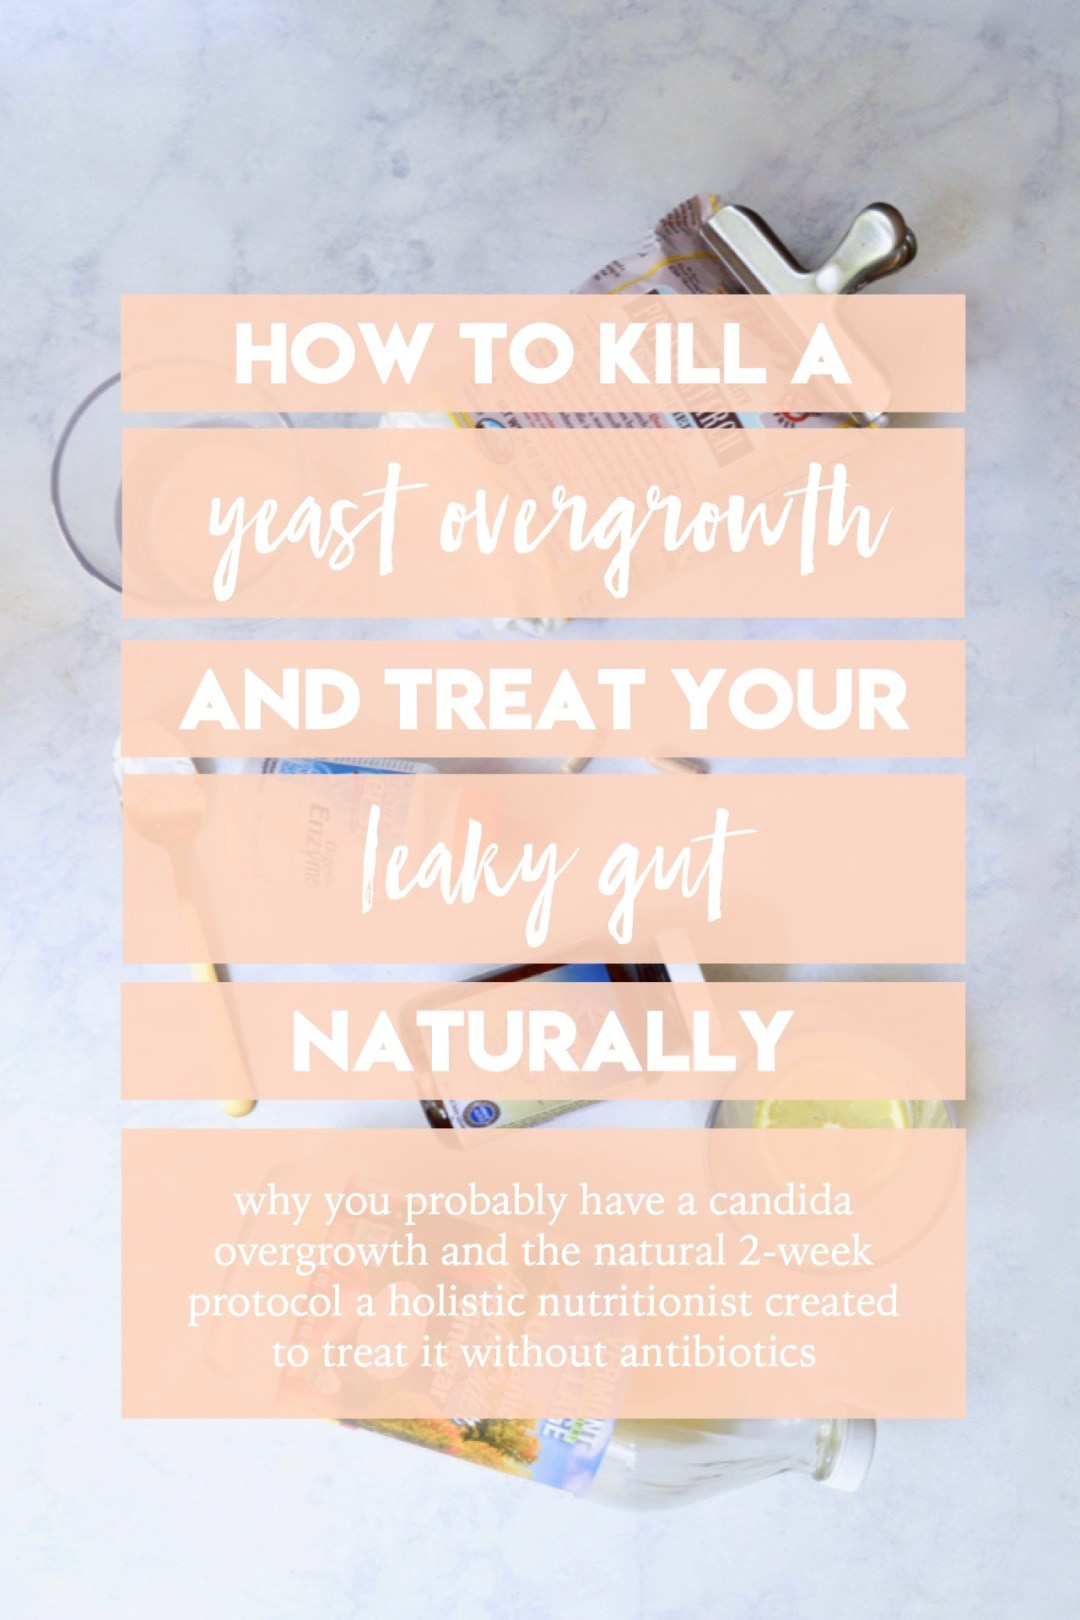 How to kill yeast overgrowth and treat leaky gut naturally | Candida yeast overgrowth, small intestinal bacterial overgrowth, leaky gut | Natural ways to use diet and supplements to treat leaky gut without medication or antibiotics | Functional medicine approach to healing leaky gut | Gut health, reestablish microbiome and fight SIBO